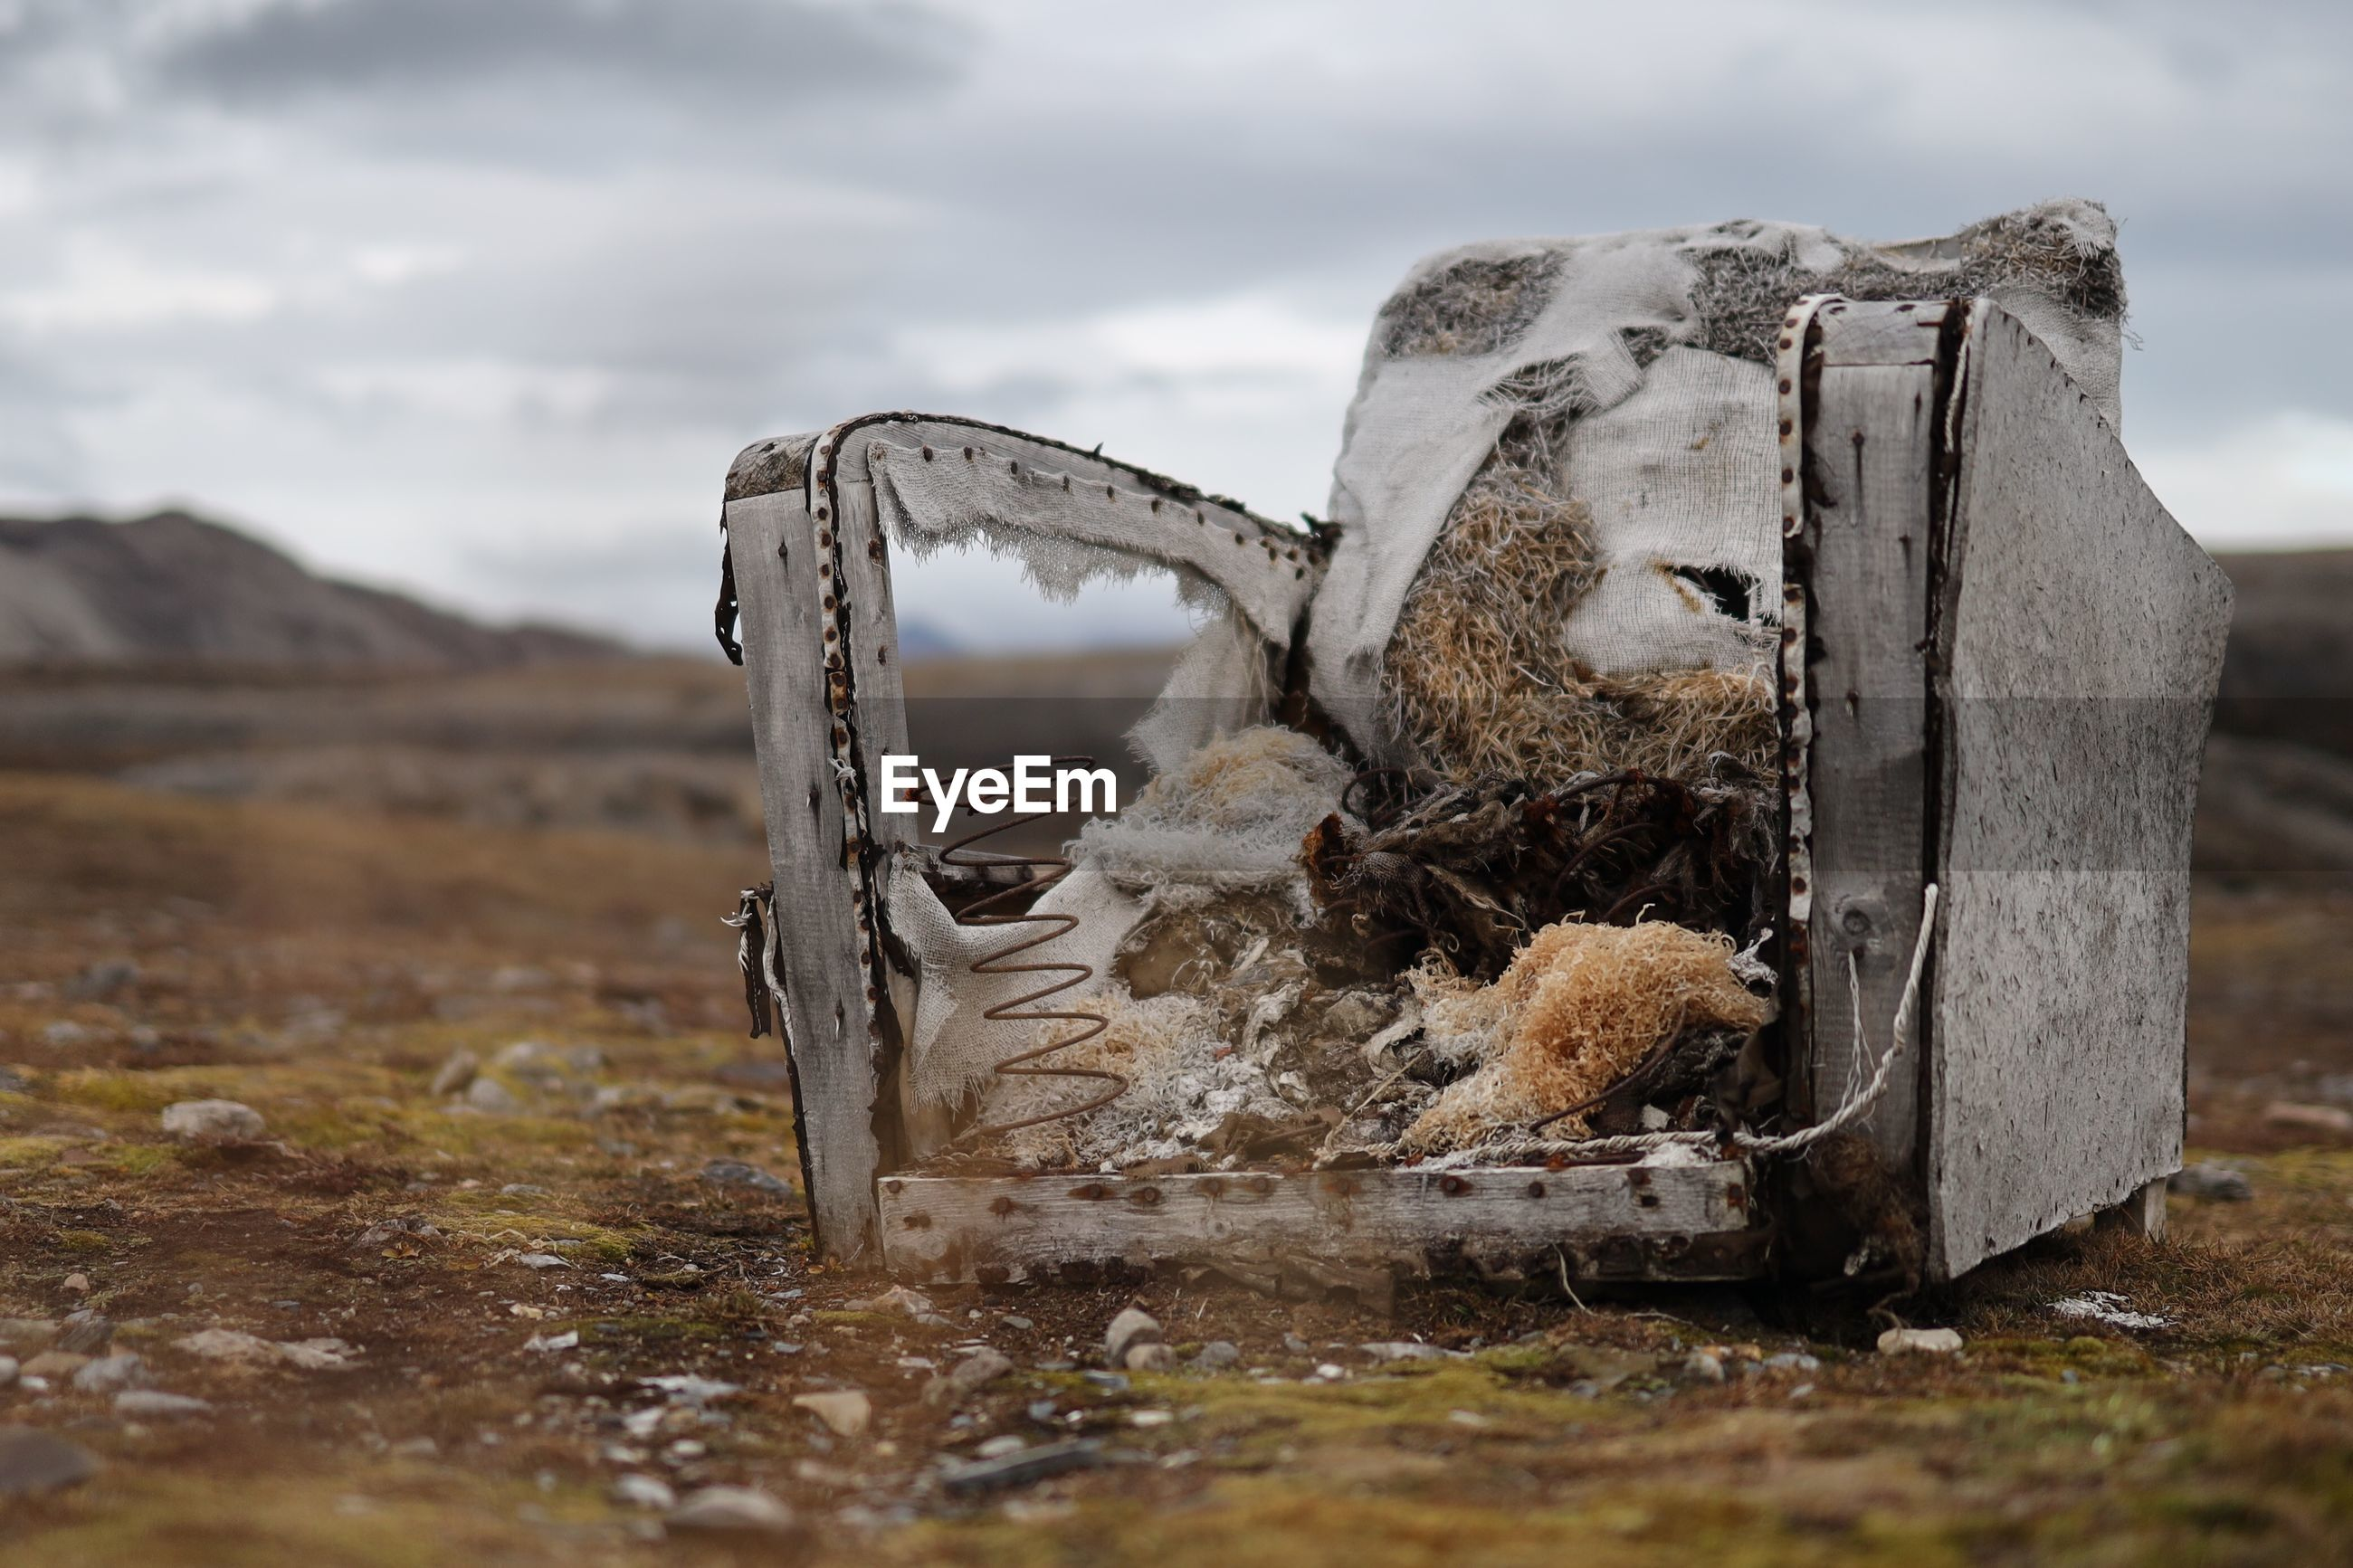 VIEW OF AN ABANDONED ANIMAL ON LAND